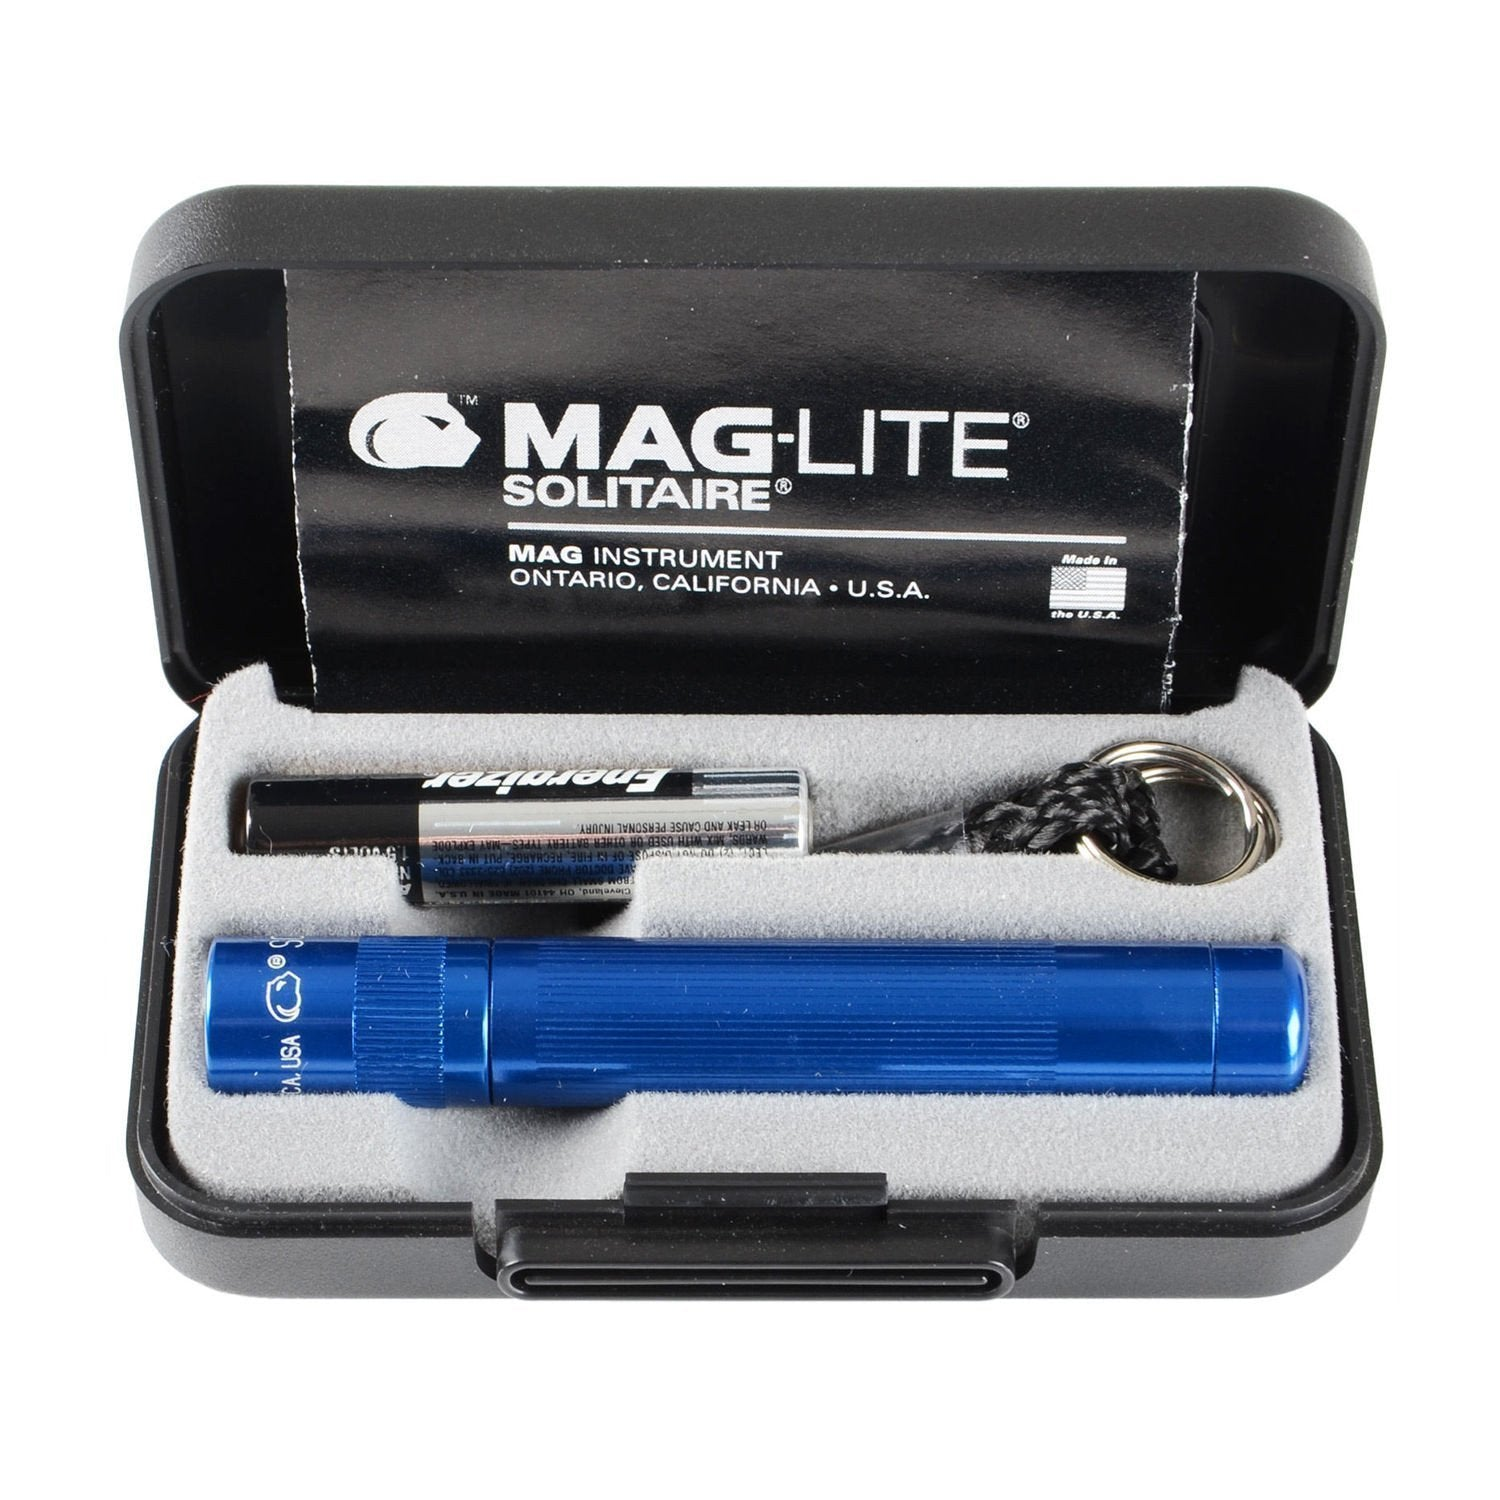 Maglite Solitaire AAA Keychain Light in Presentation Box - Blue Tactical Gear Australia Supplier Distributor Dealer